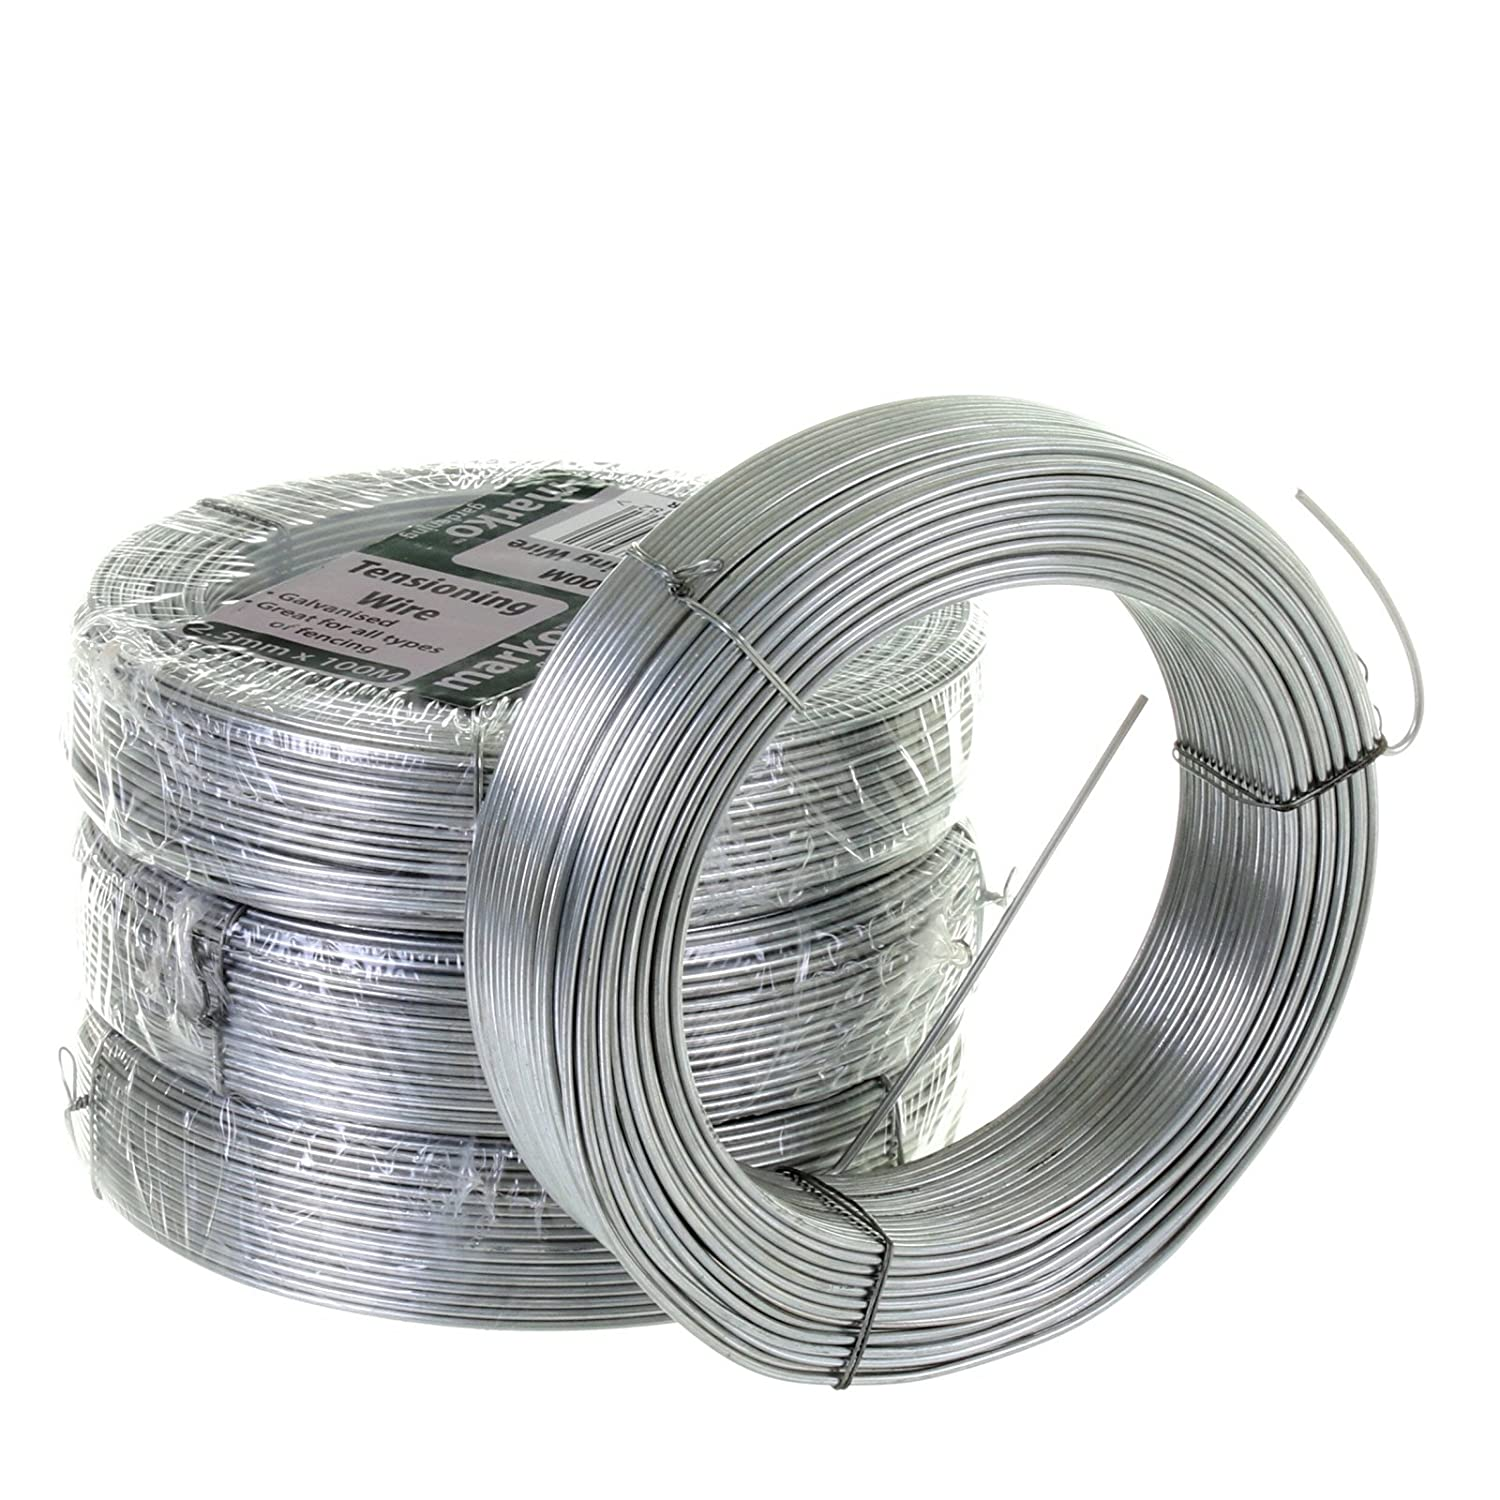 Marko Galvanised Wire Heavy Duty 100 Meters X 2.5MM Garden Fencing ...